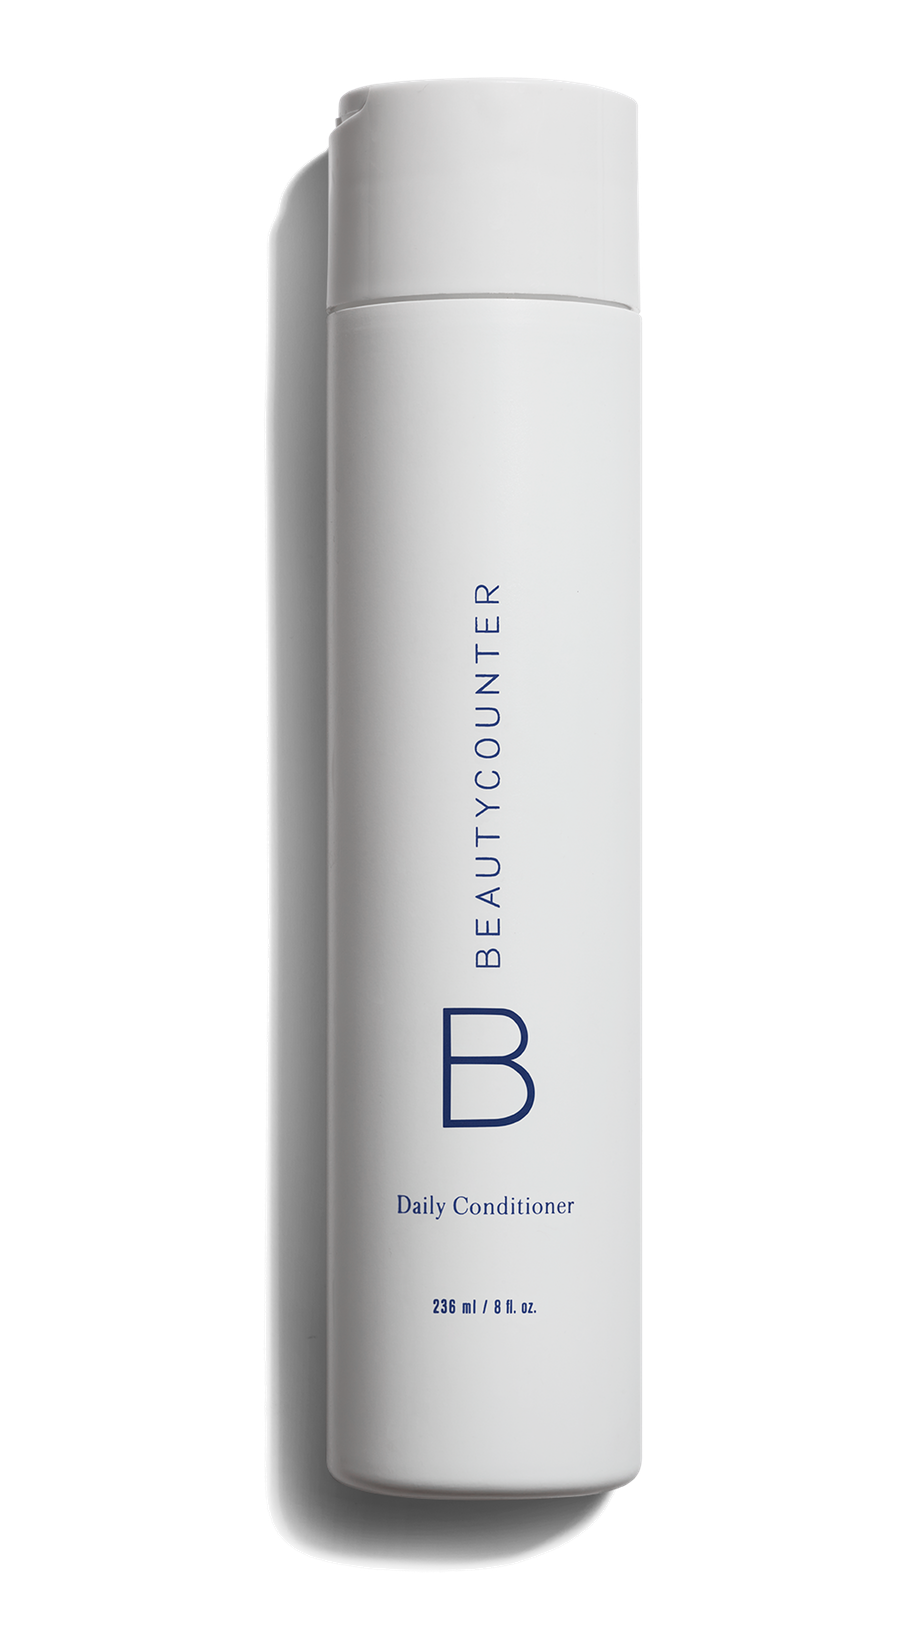 5. Daily Conditioner - Same with this conditioner :)Click the button below to be taken to the product page (and to see its amazing reviews!)